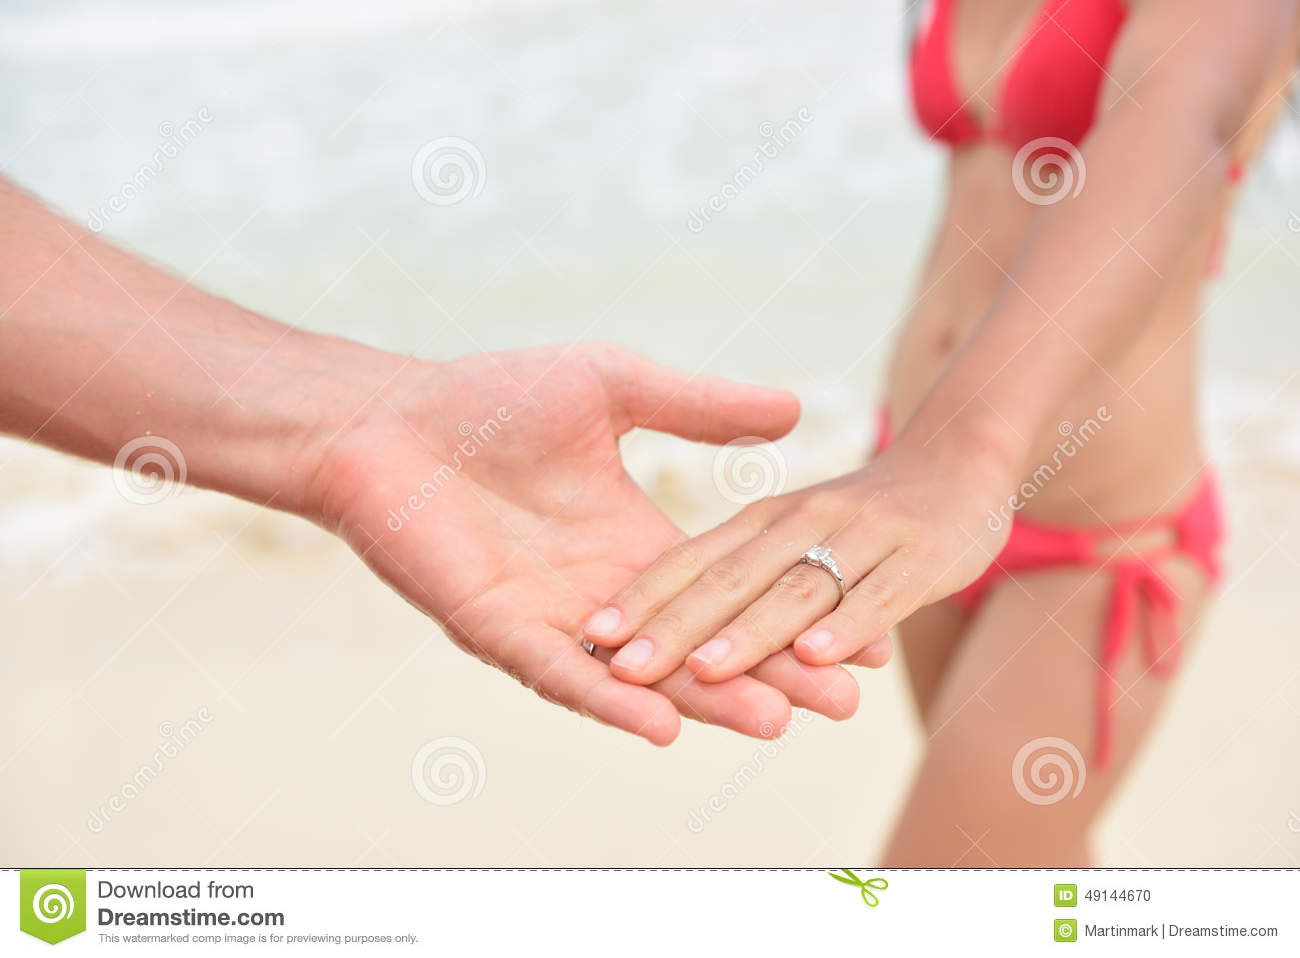 Casual dating holding hands